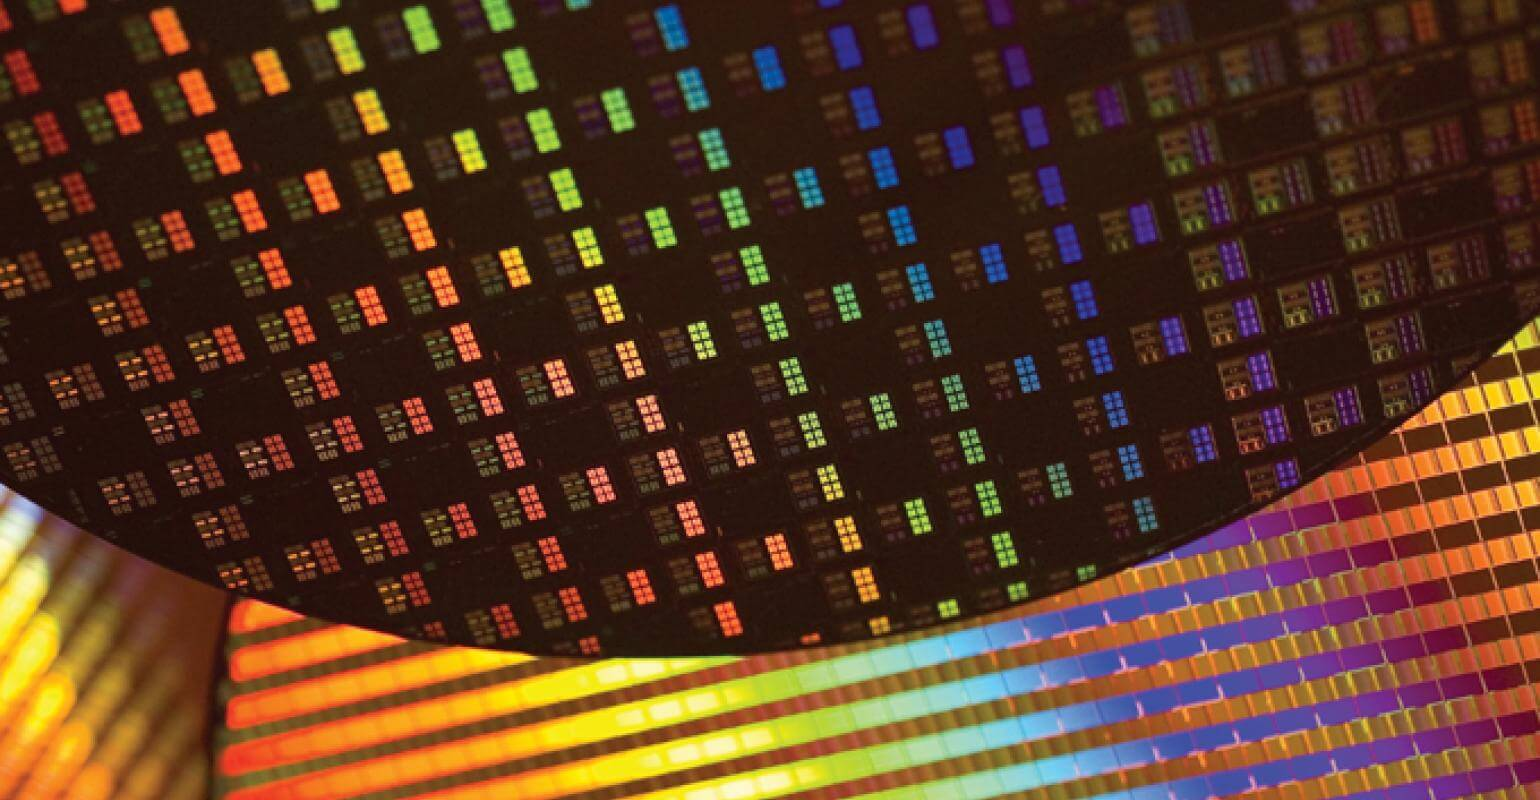 TSMC will up capital expenditure by $4B to meet rising demand for 7nm and 5nm chips